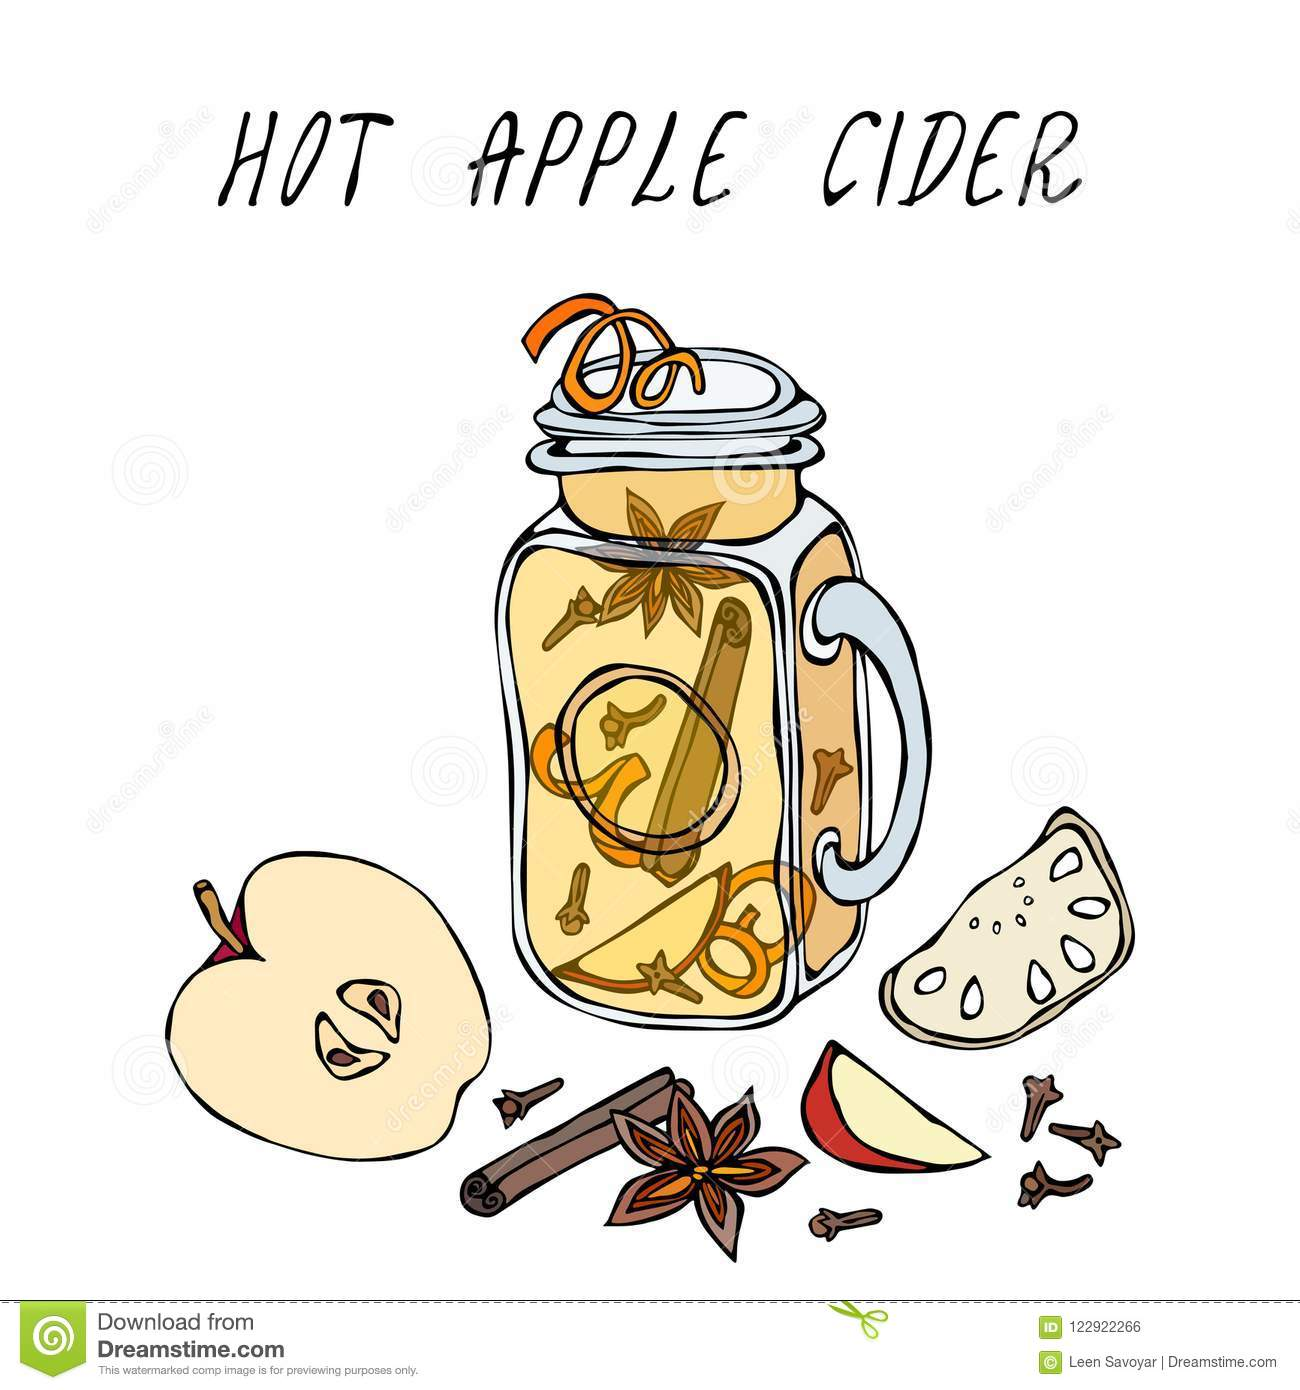 hight resolution of hot apple cider stock illustrations 89 hot apple cider stock illustrations vectors clipart dreamstime